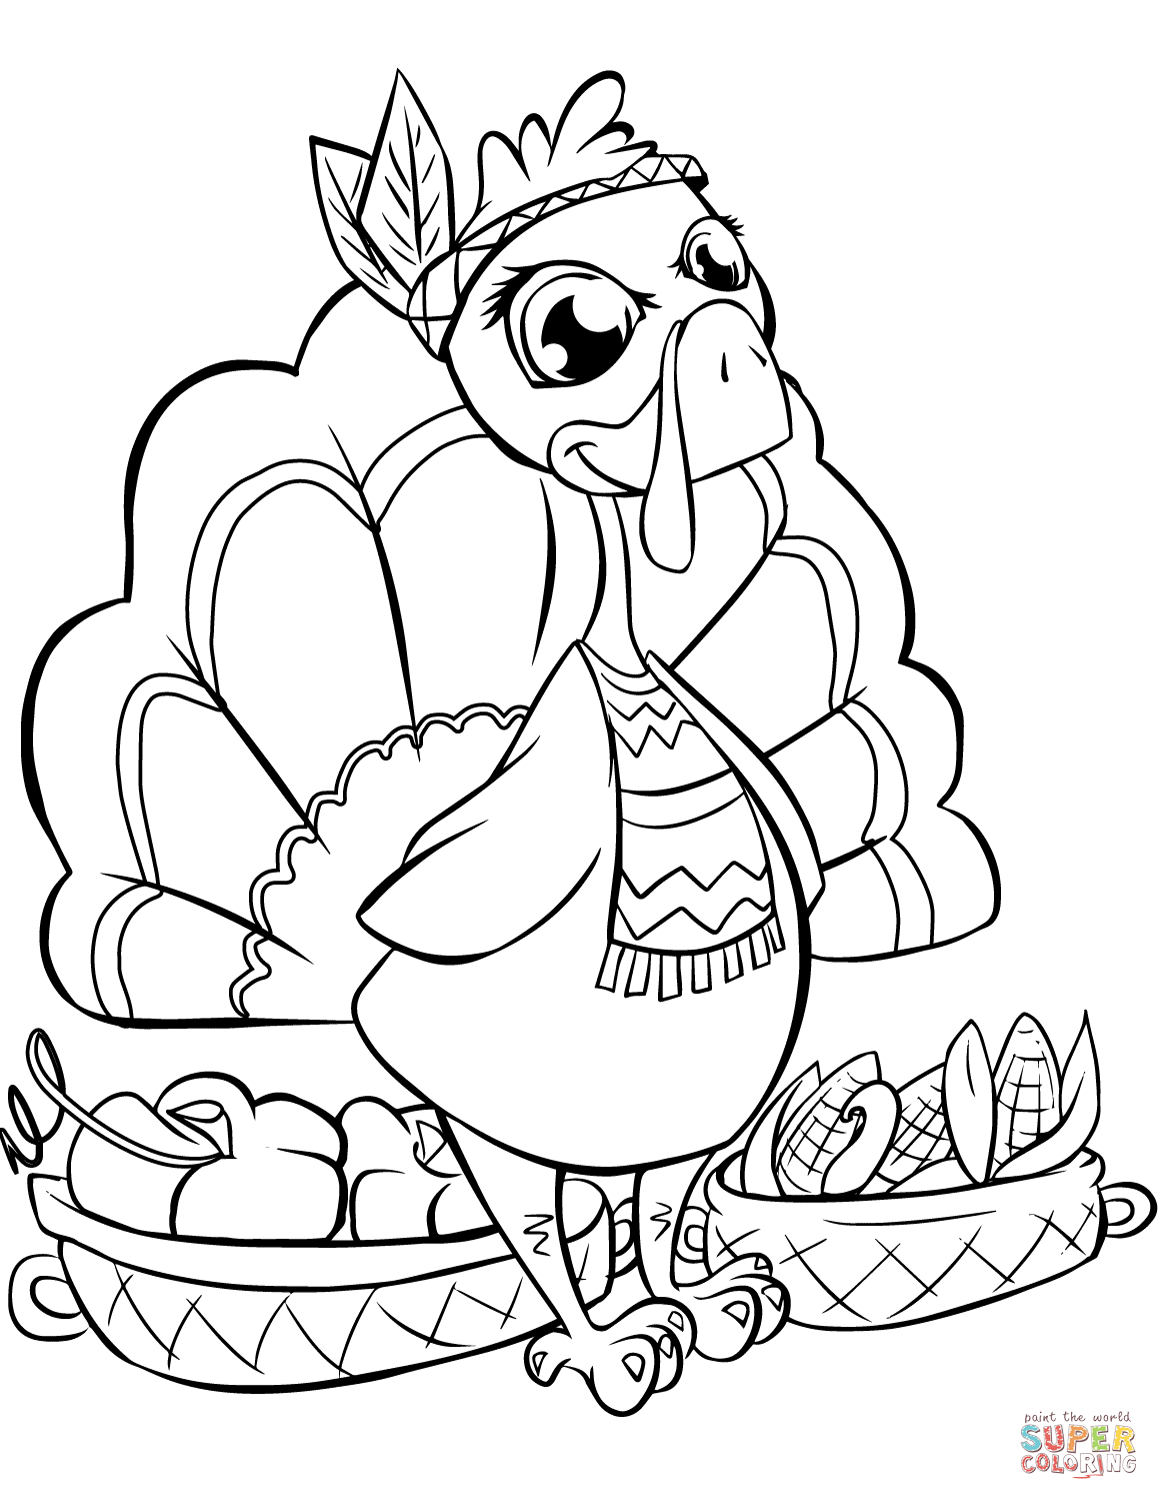 Cute Turkey With Baskets Coloring Page